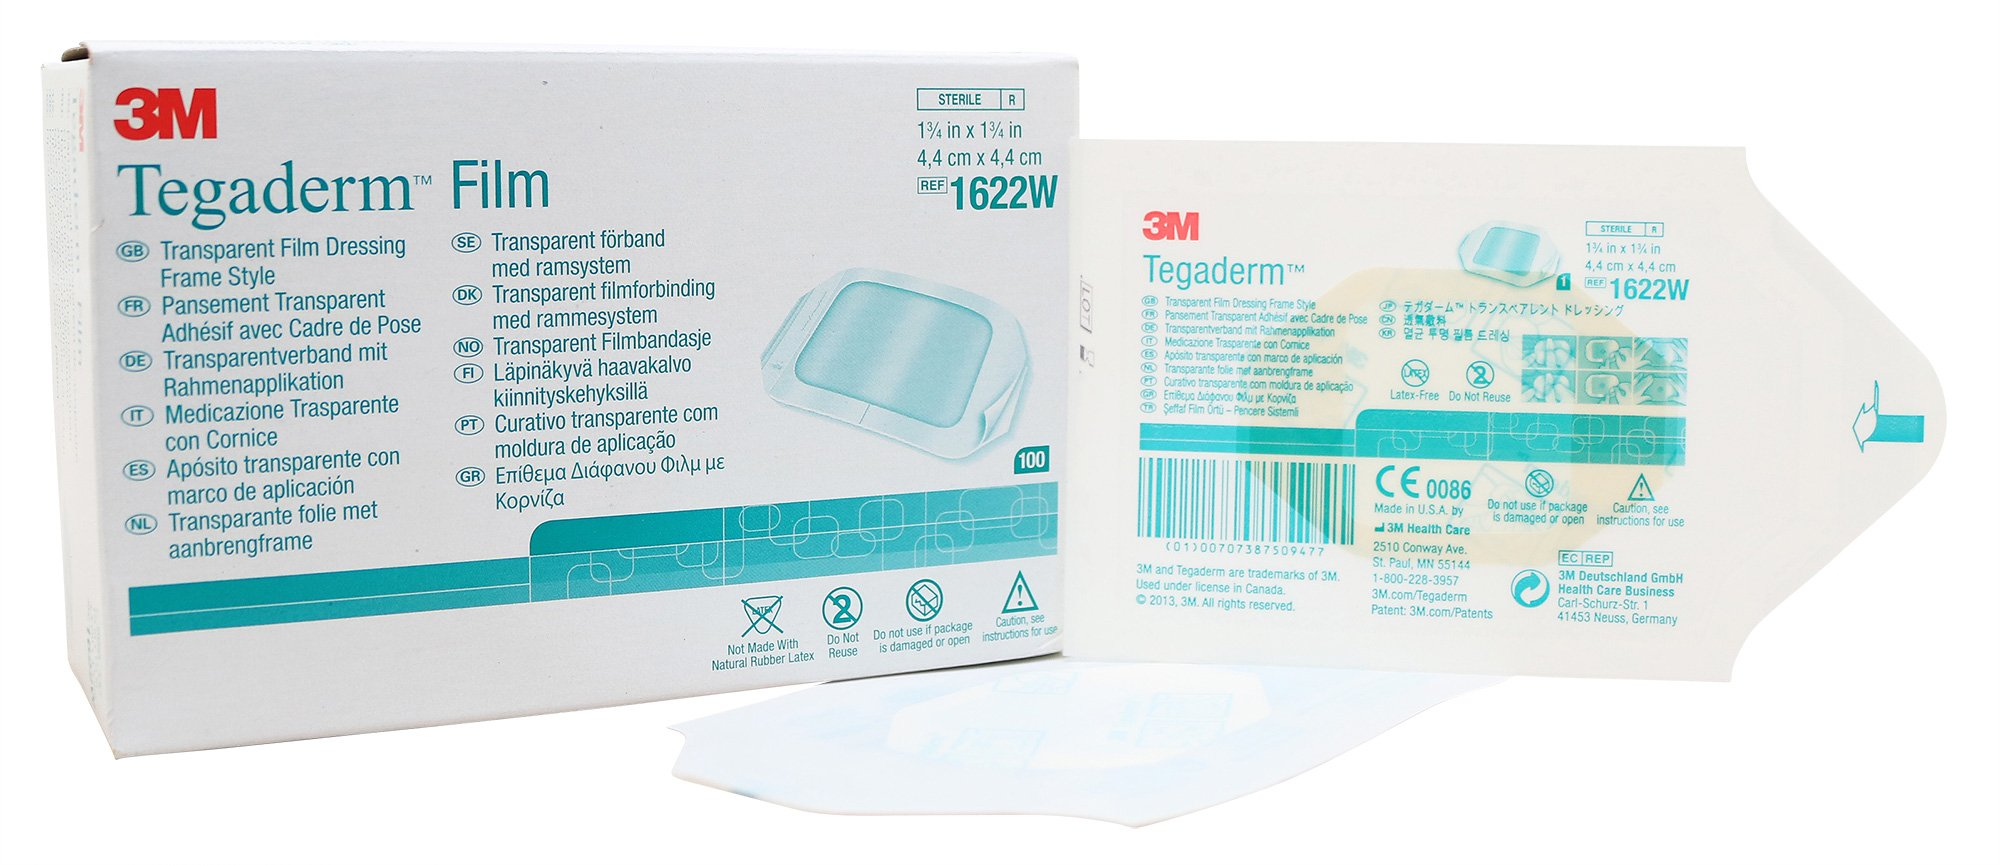 7779329 PT# 1622W Dressing Tegaderm Sacral 1-3/4x1-3/4'' Film Adh Adhr 100/Bx Made by 3M Medical Products